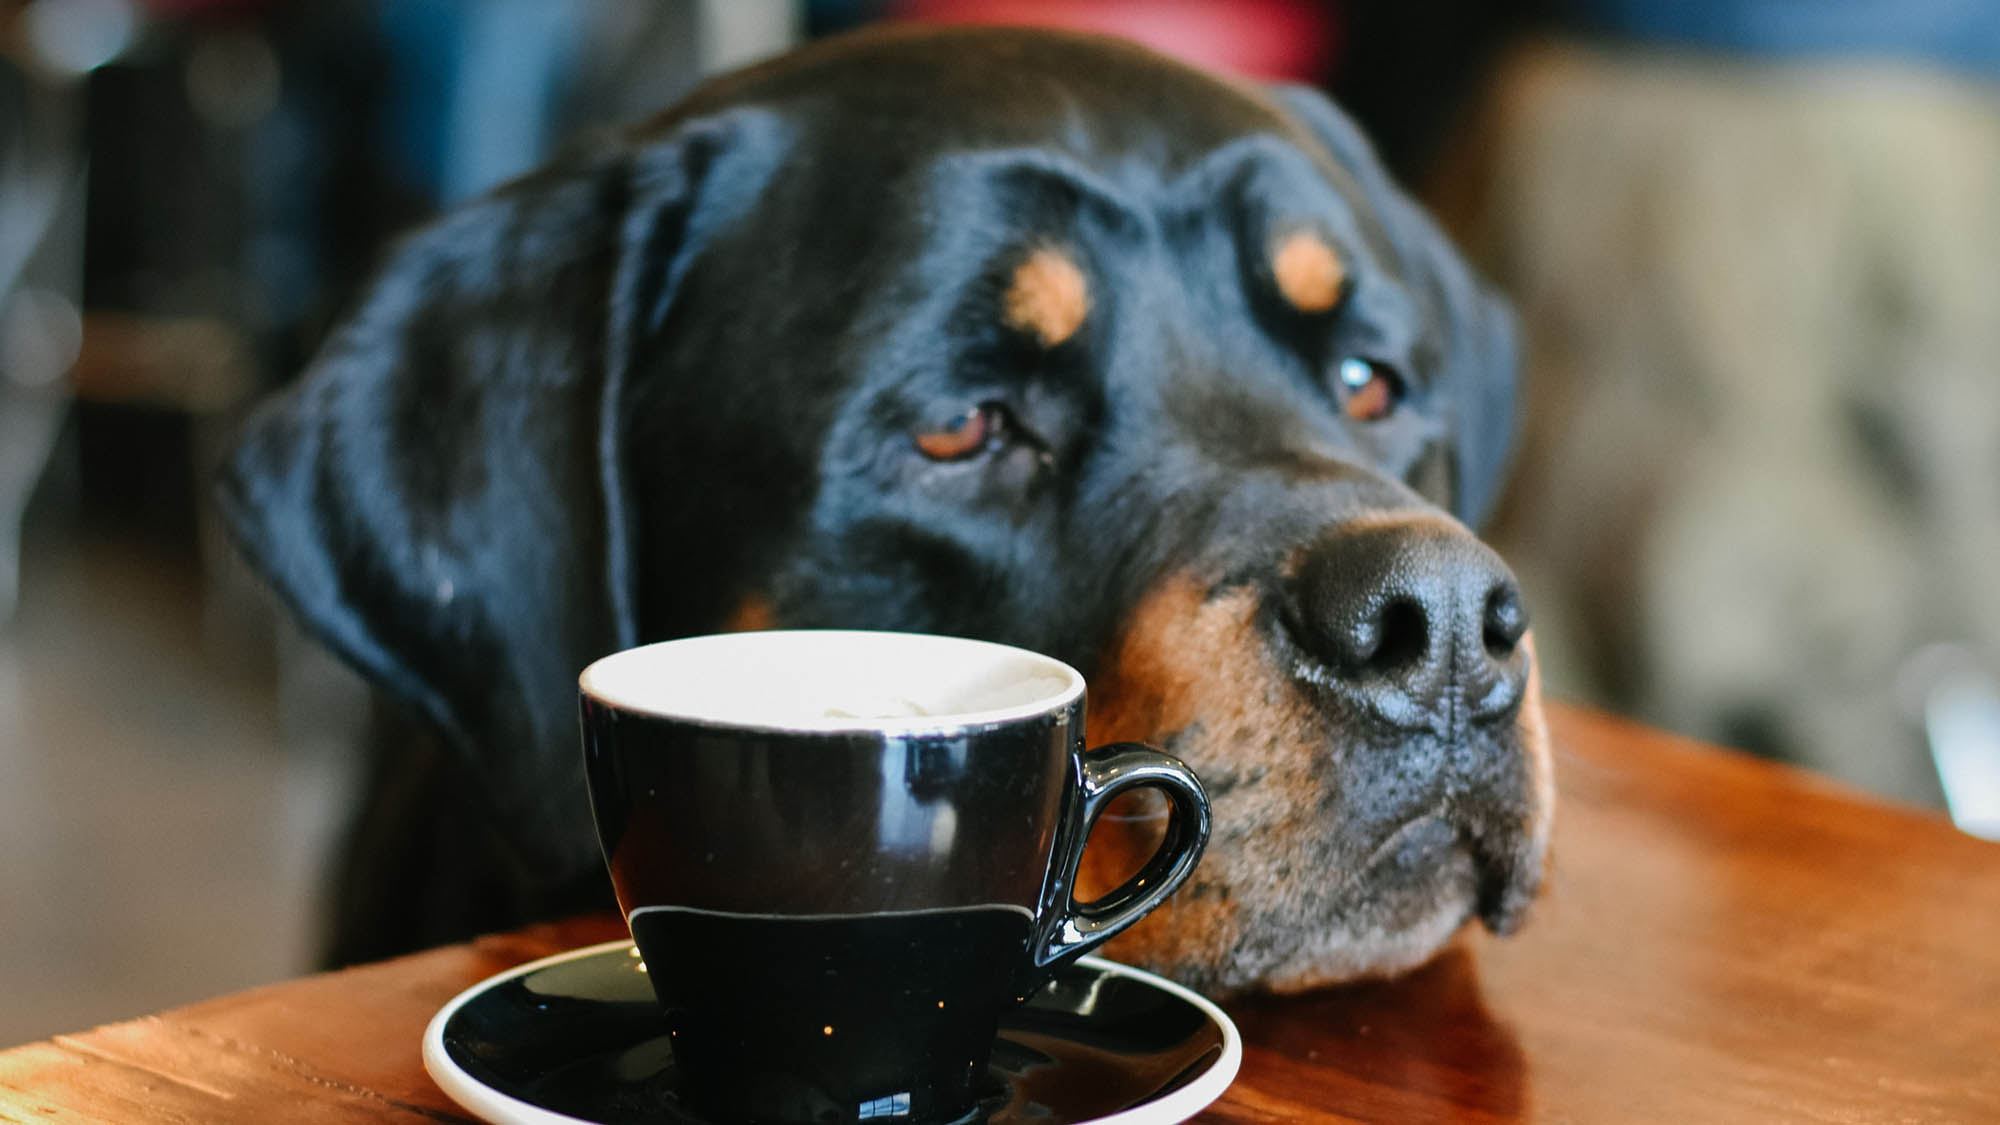 Dog Head on Table With Coffee Cup